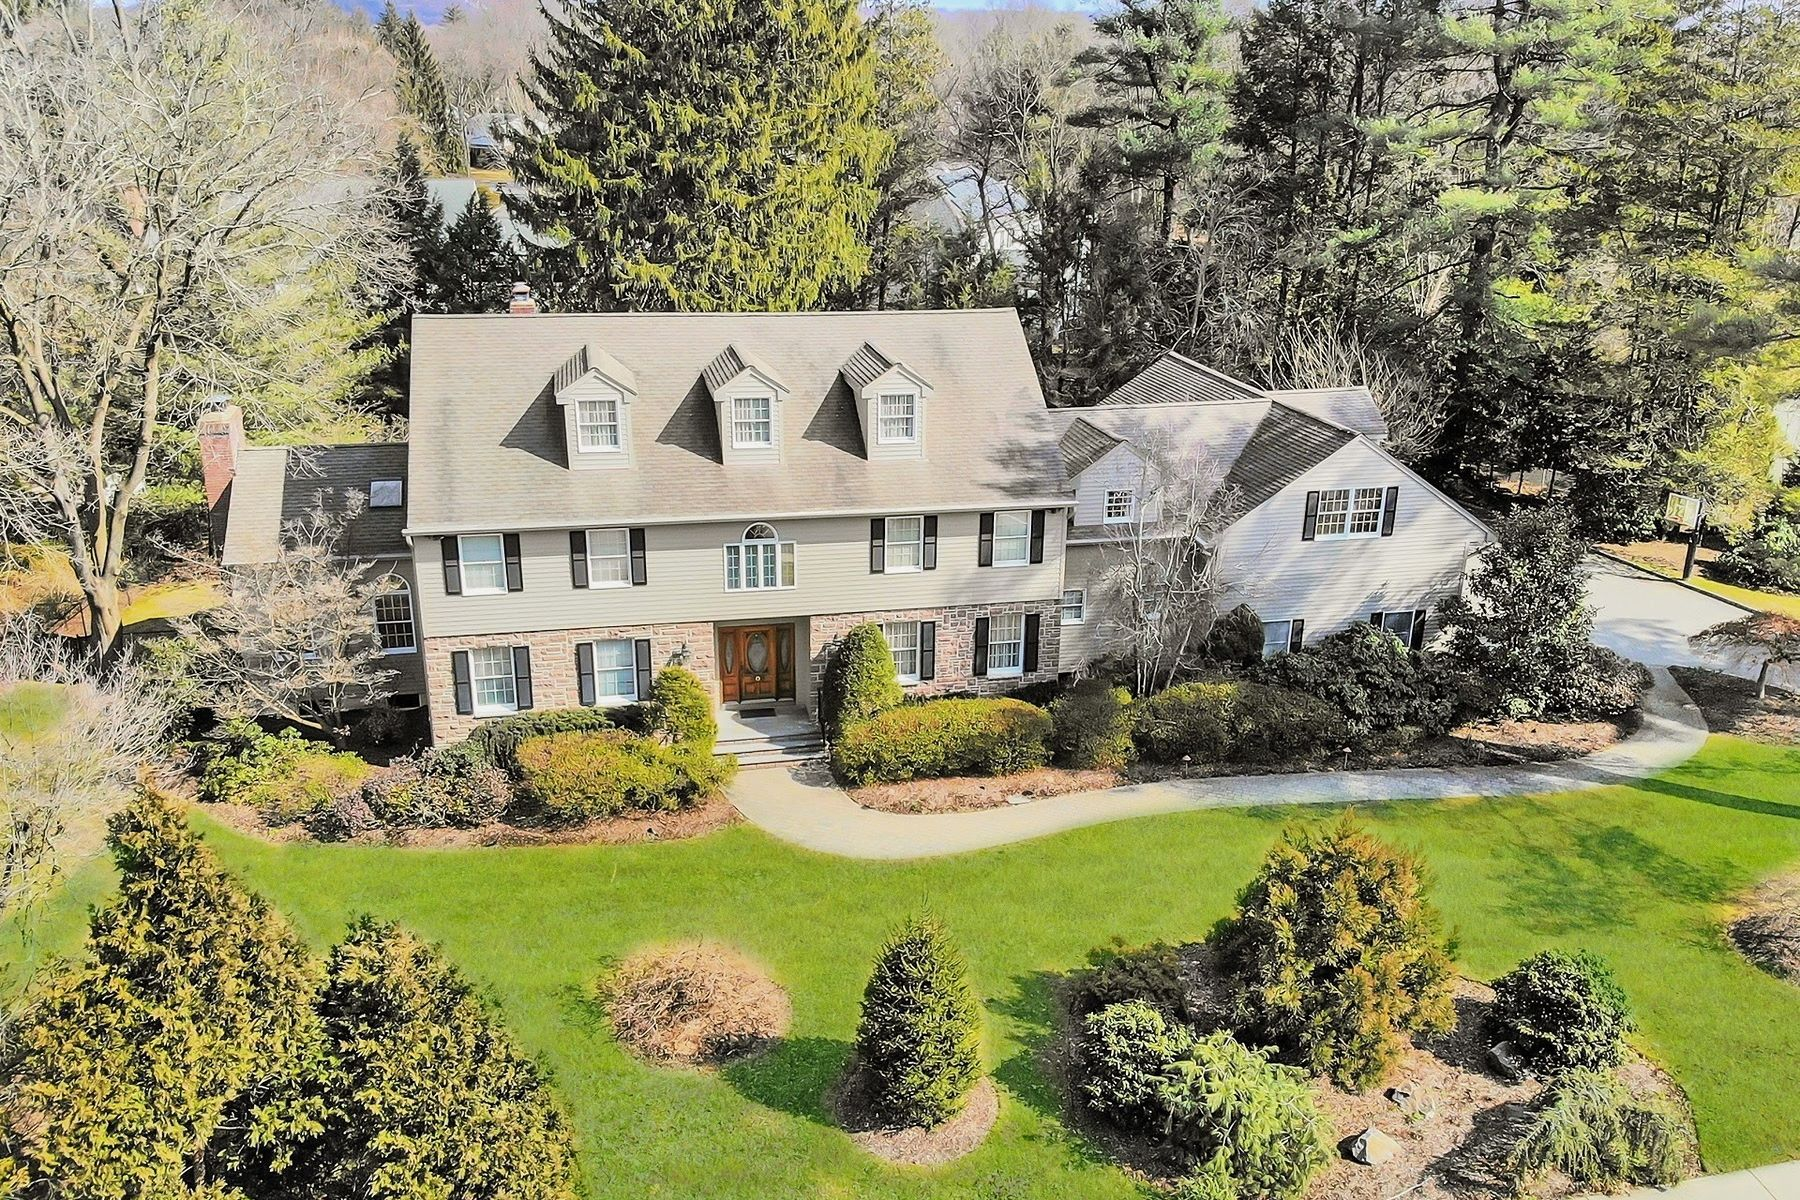 Single Family Homes for Sale at Elegant & Stately East Hill 206 County Rd, Demarest, New Jersey 07627 United States